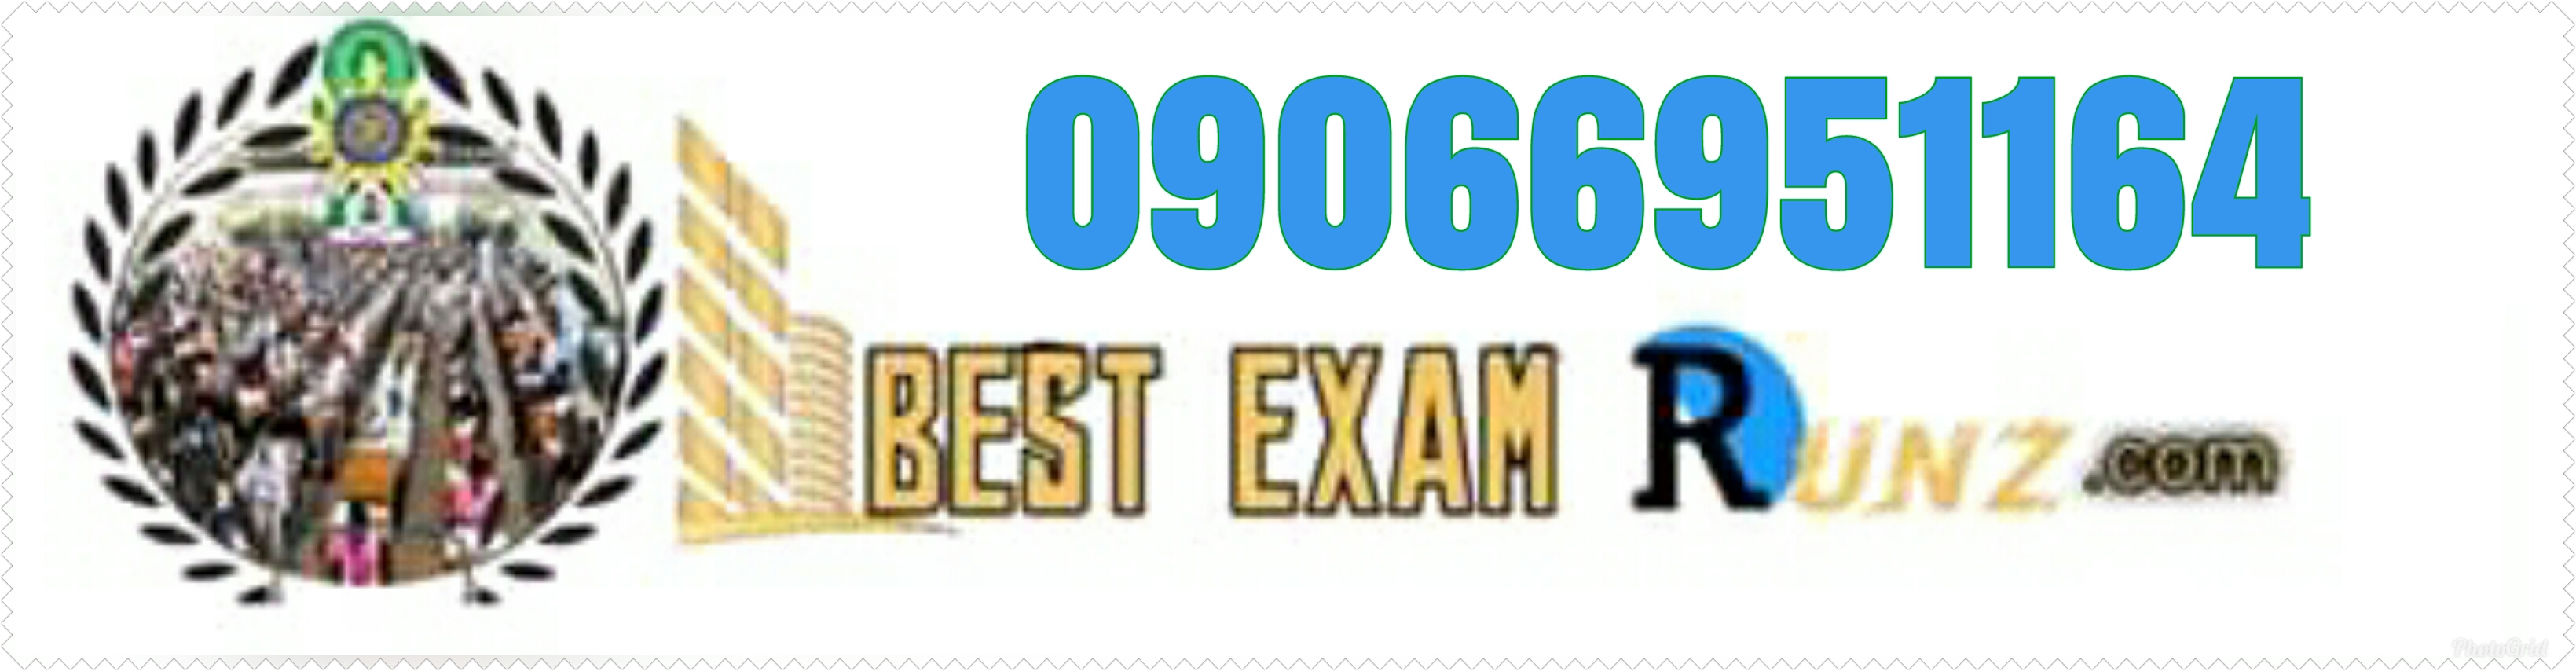 best exam runz website